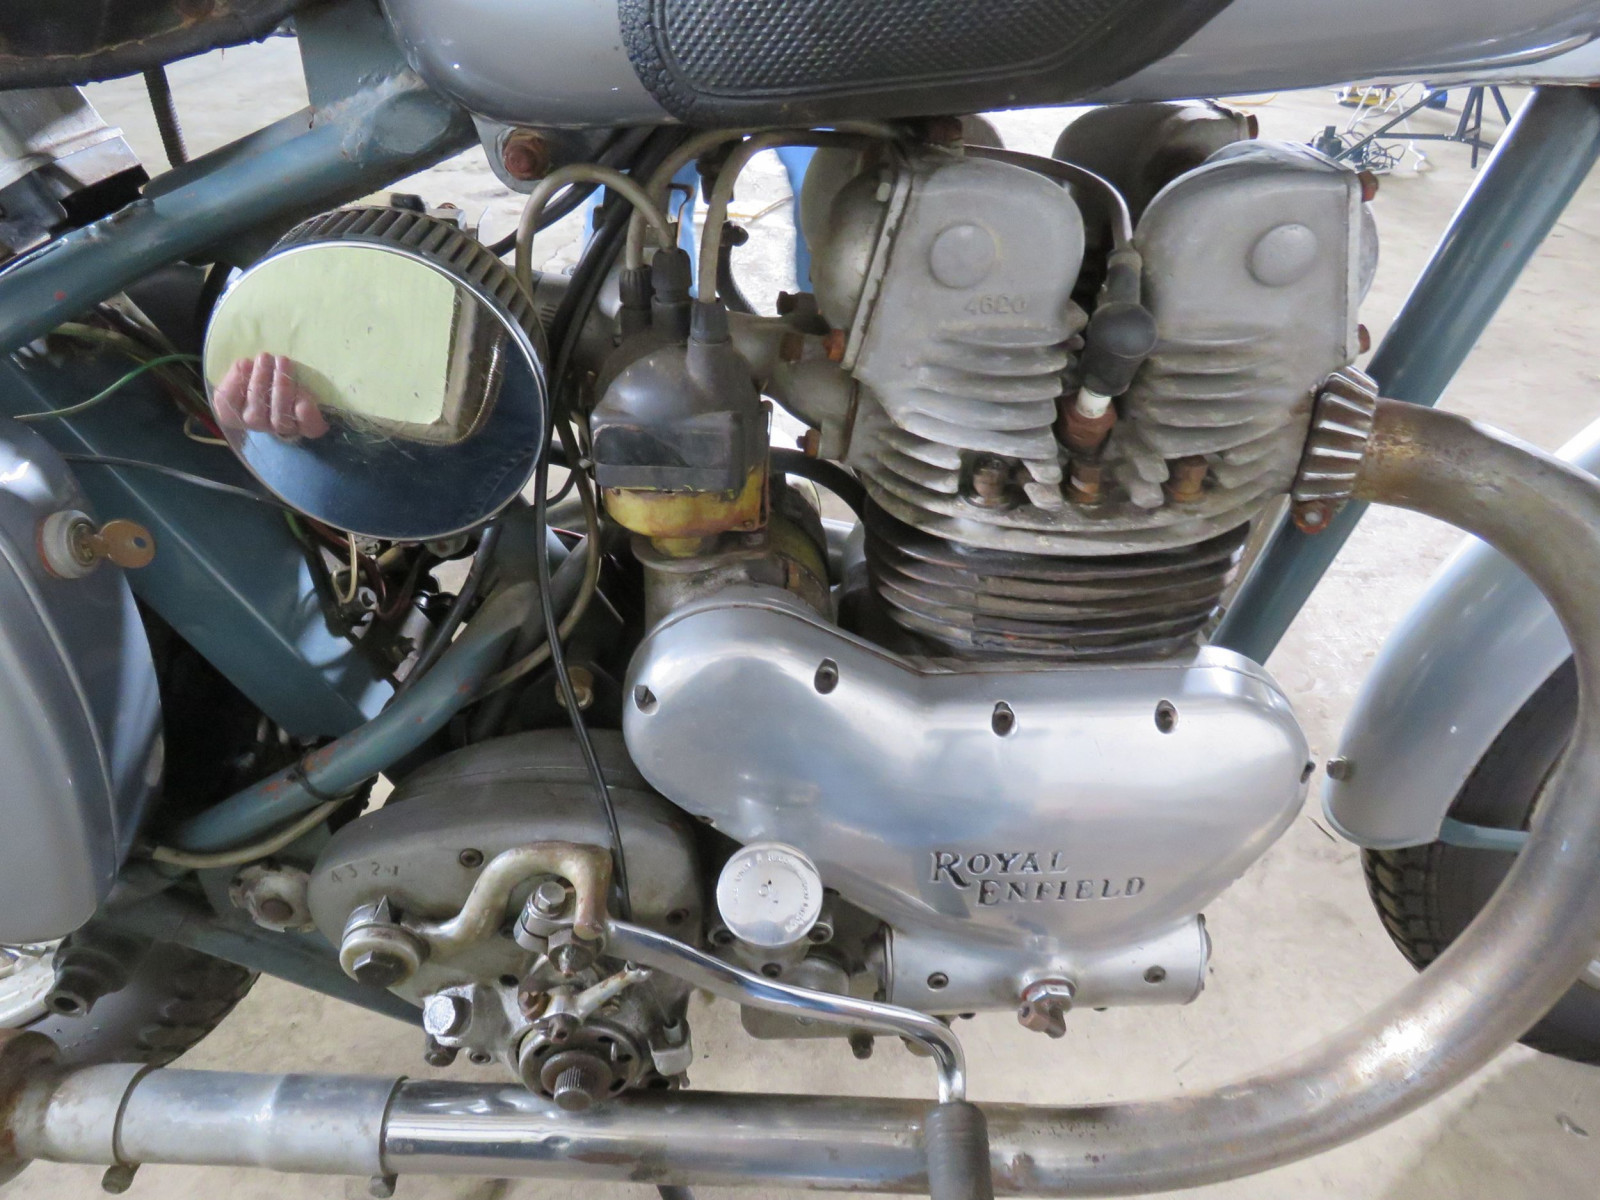 1952 Royal Enfield 500 Twin Motorcycle - Image 8